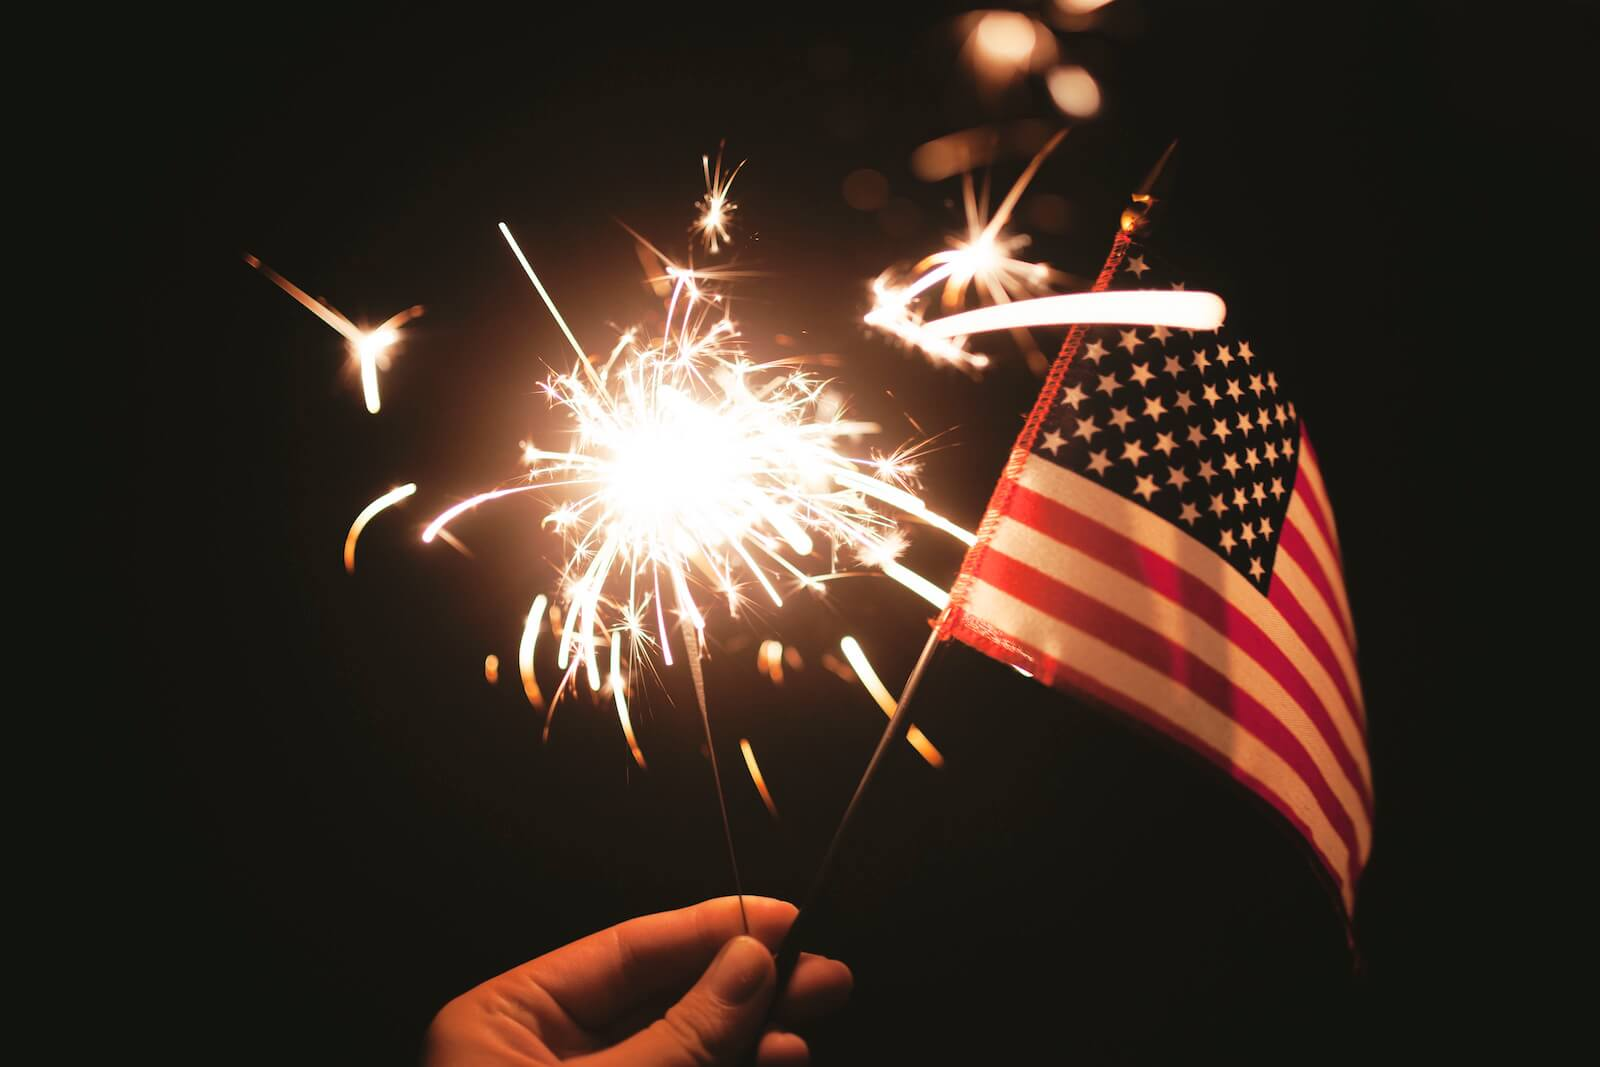 Markets have fireworks prior to 4th of July